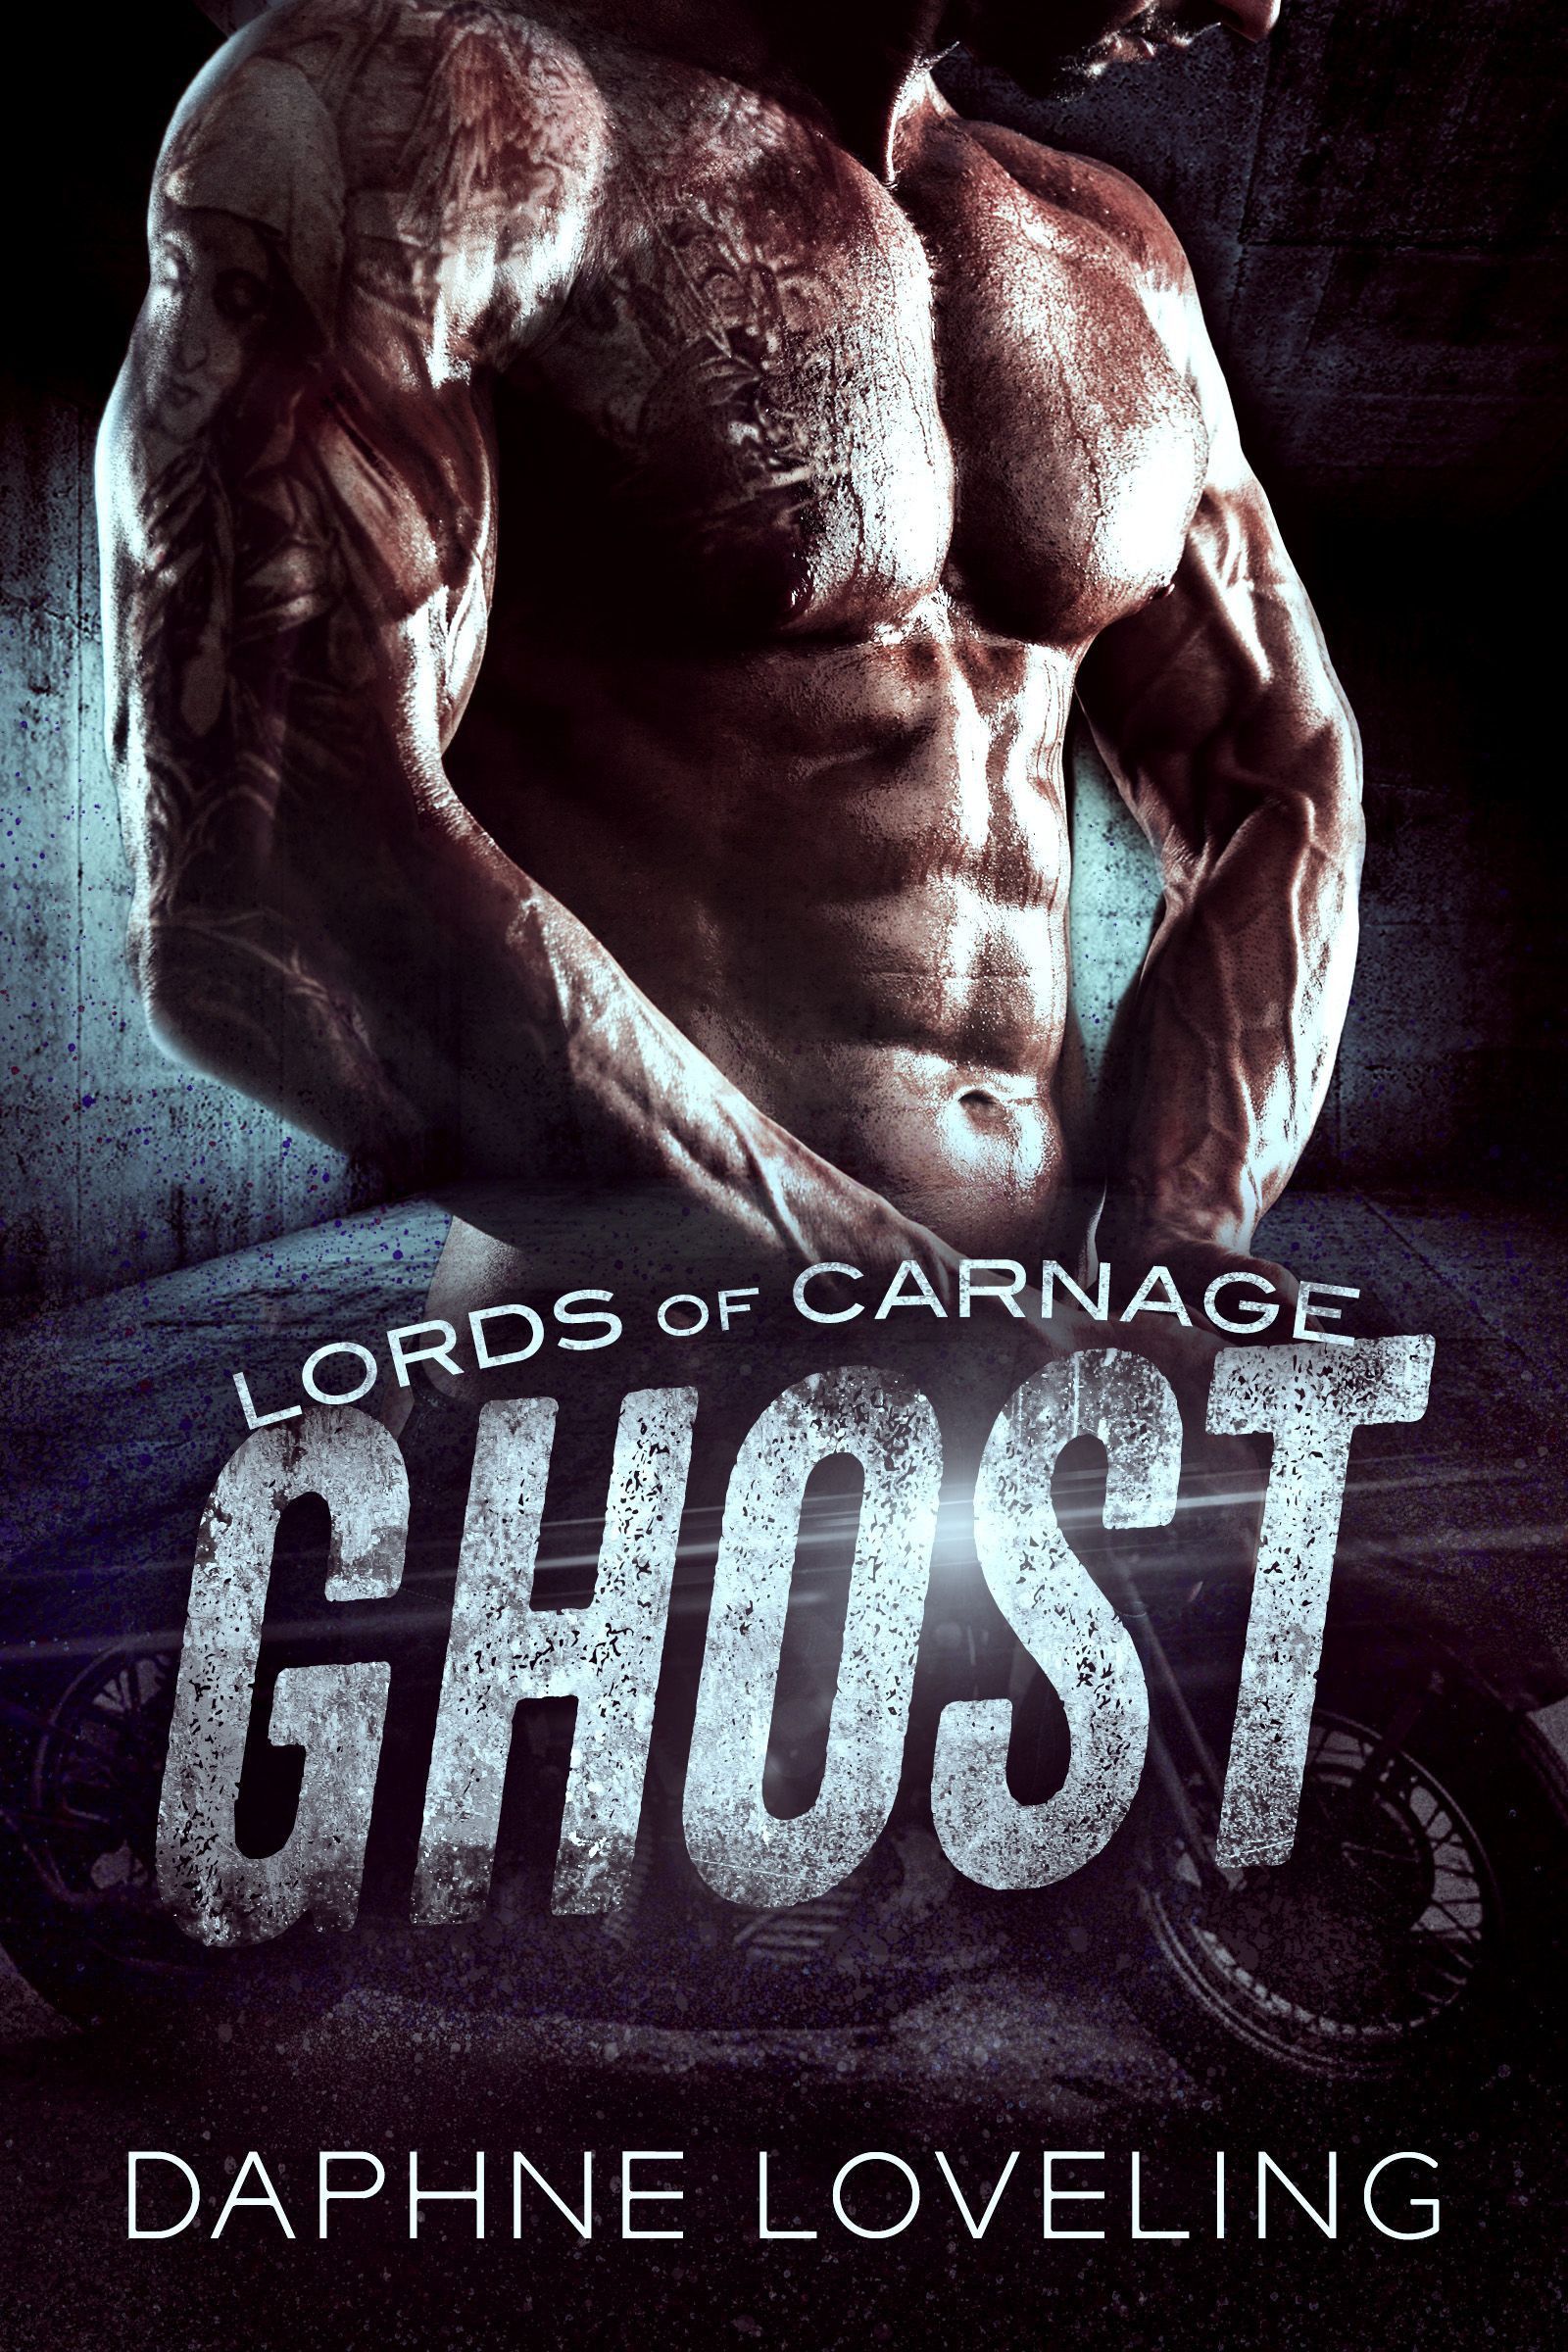 Ghost lords of carnage motorcycle club romance by daphne loveilng ebook deals on ghost lords of carnage motorcycle club romance by daphne loveilng free and discounted ebook deals for ghost lords of carnage motorcycle fandeluxe Gallery